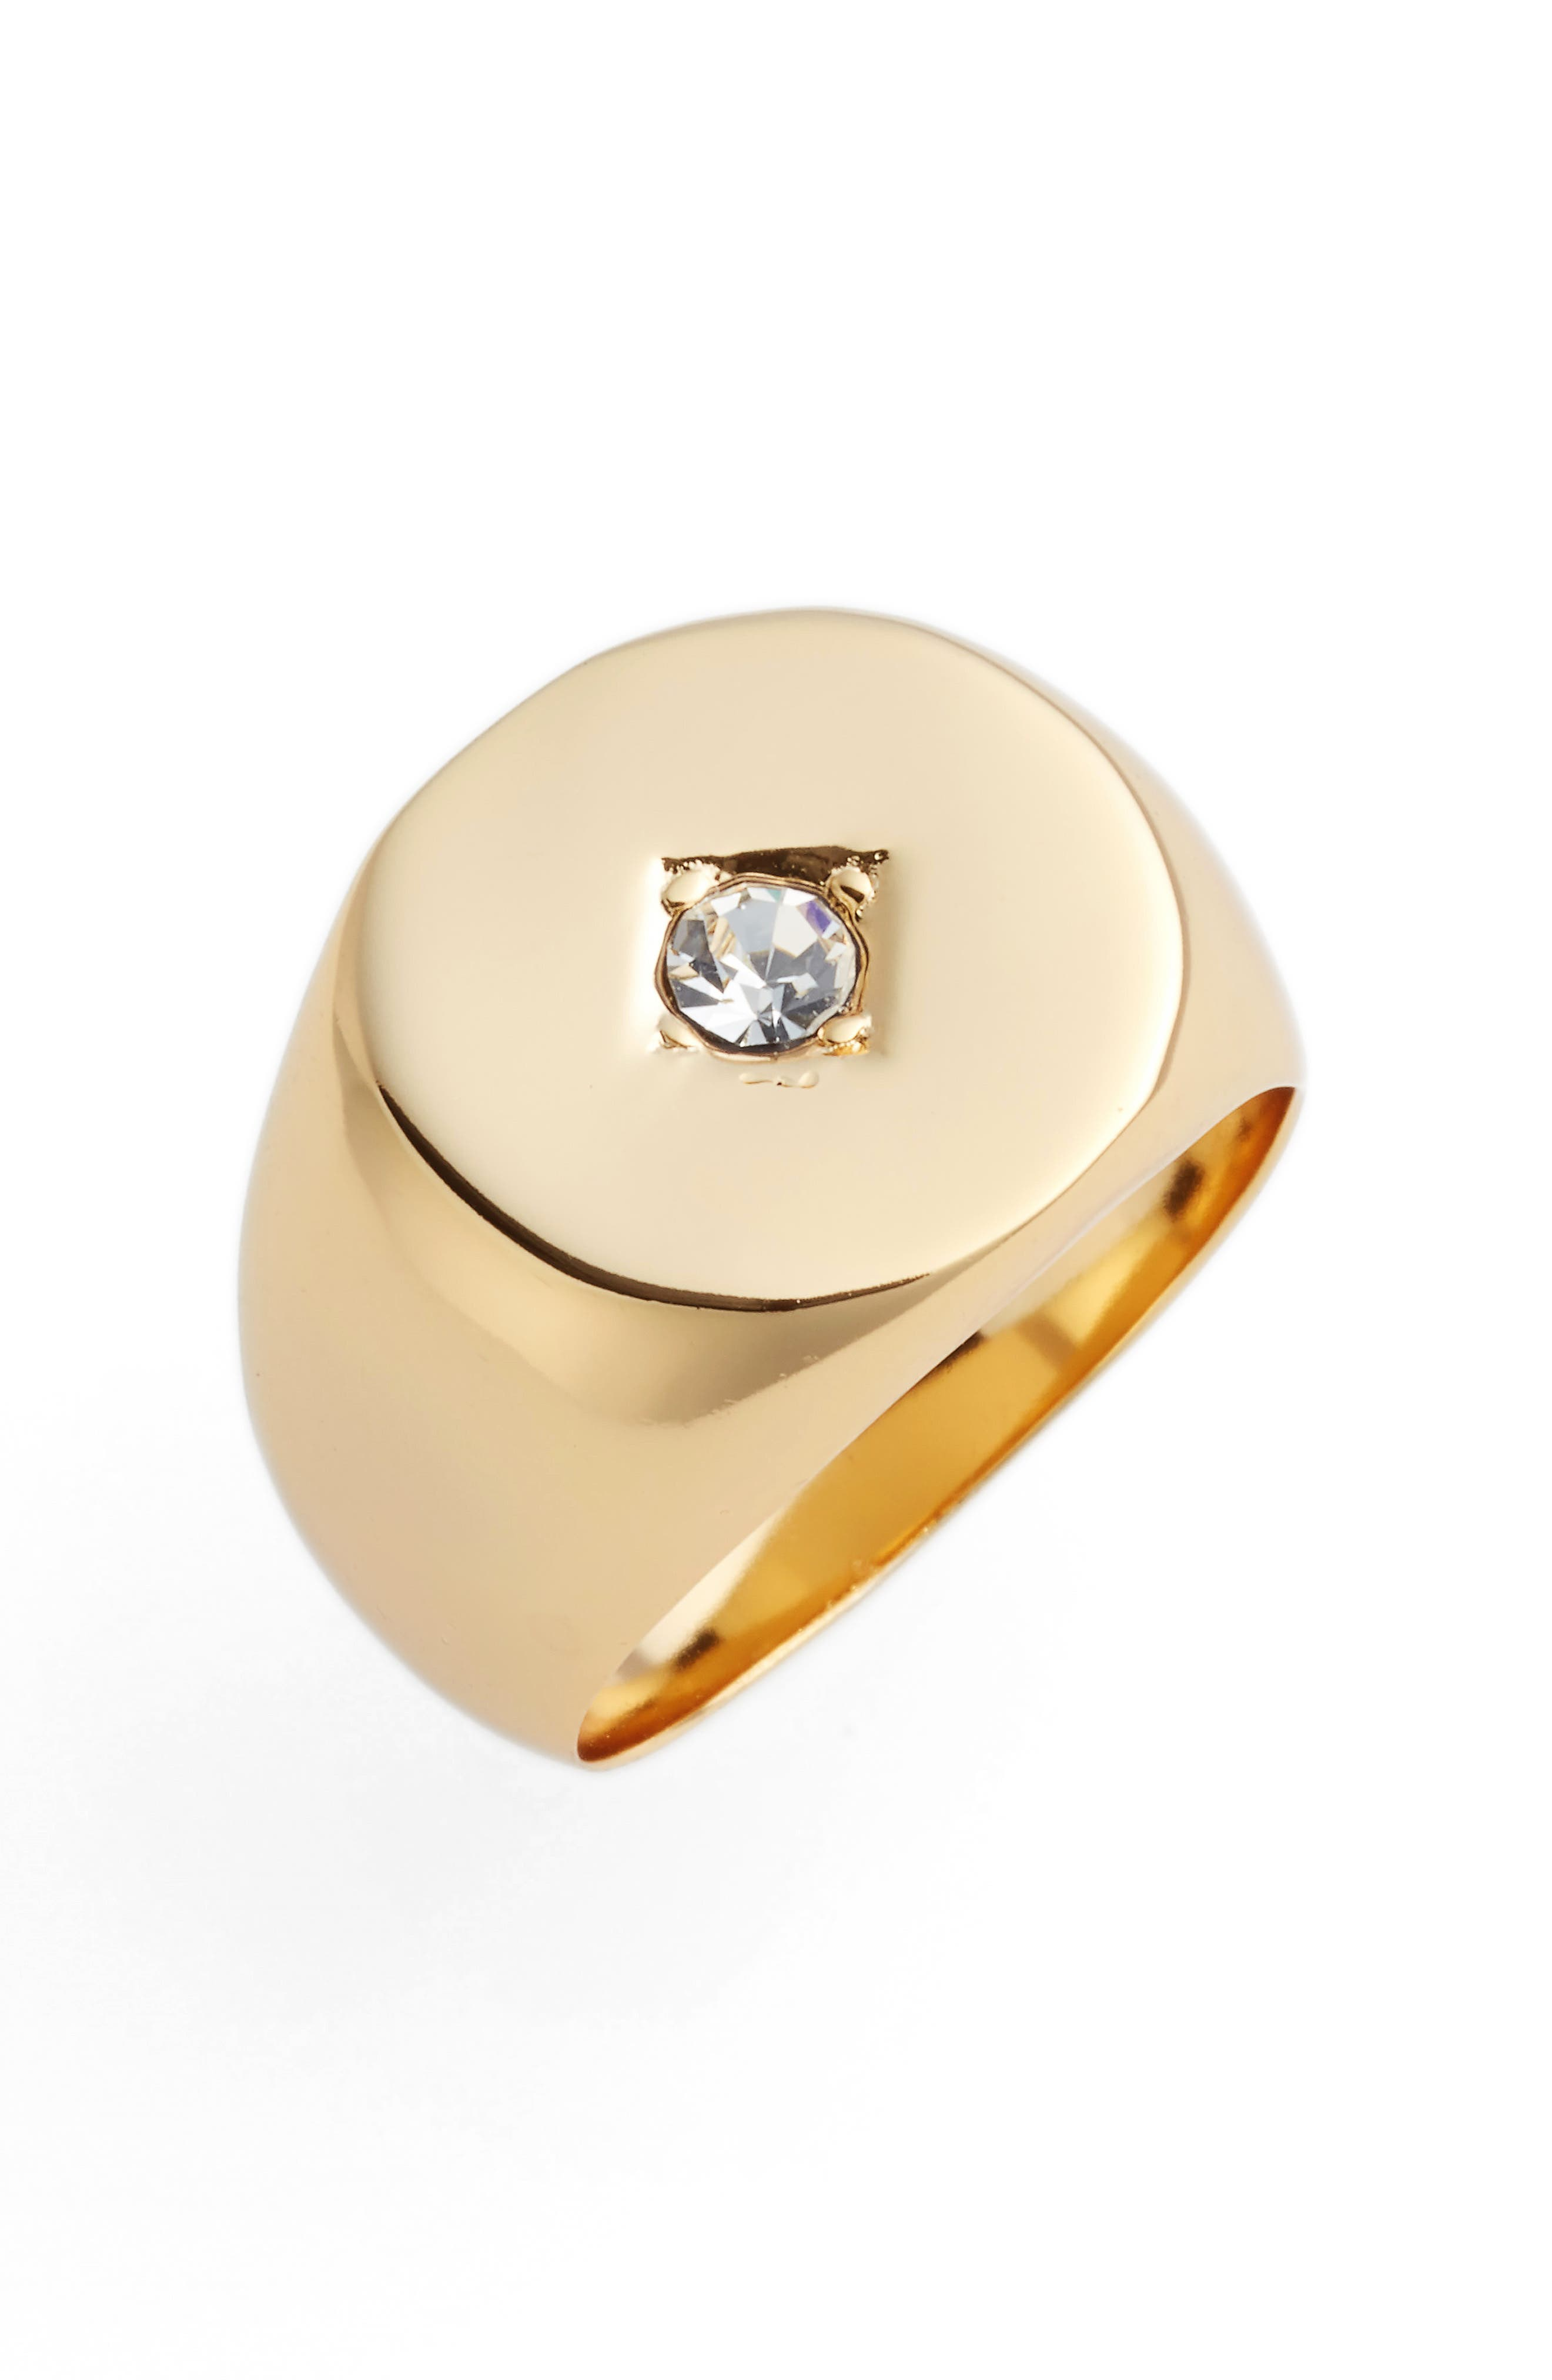 Tulum Signet Ring,                             Main thumbnail 1, color,                             Gold/ Clear